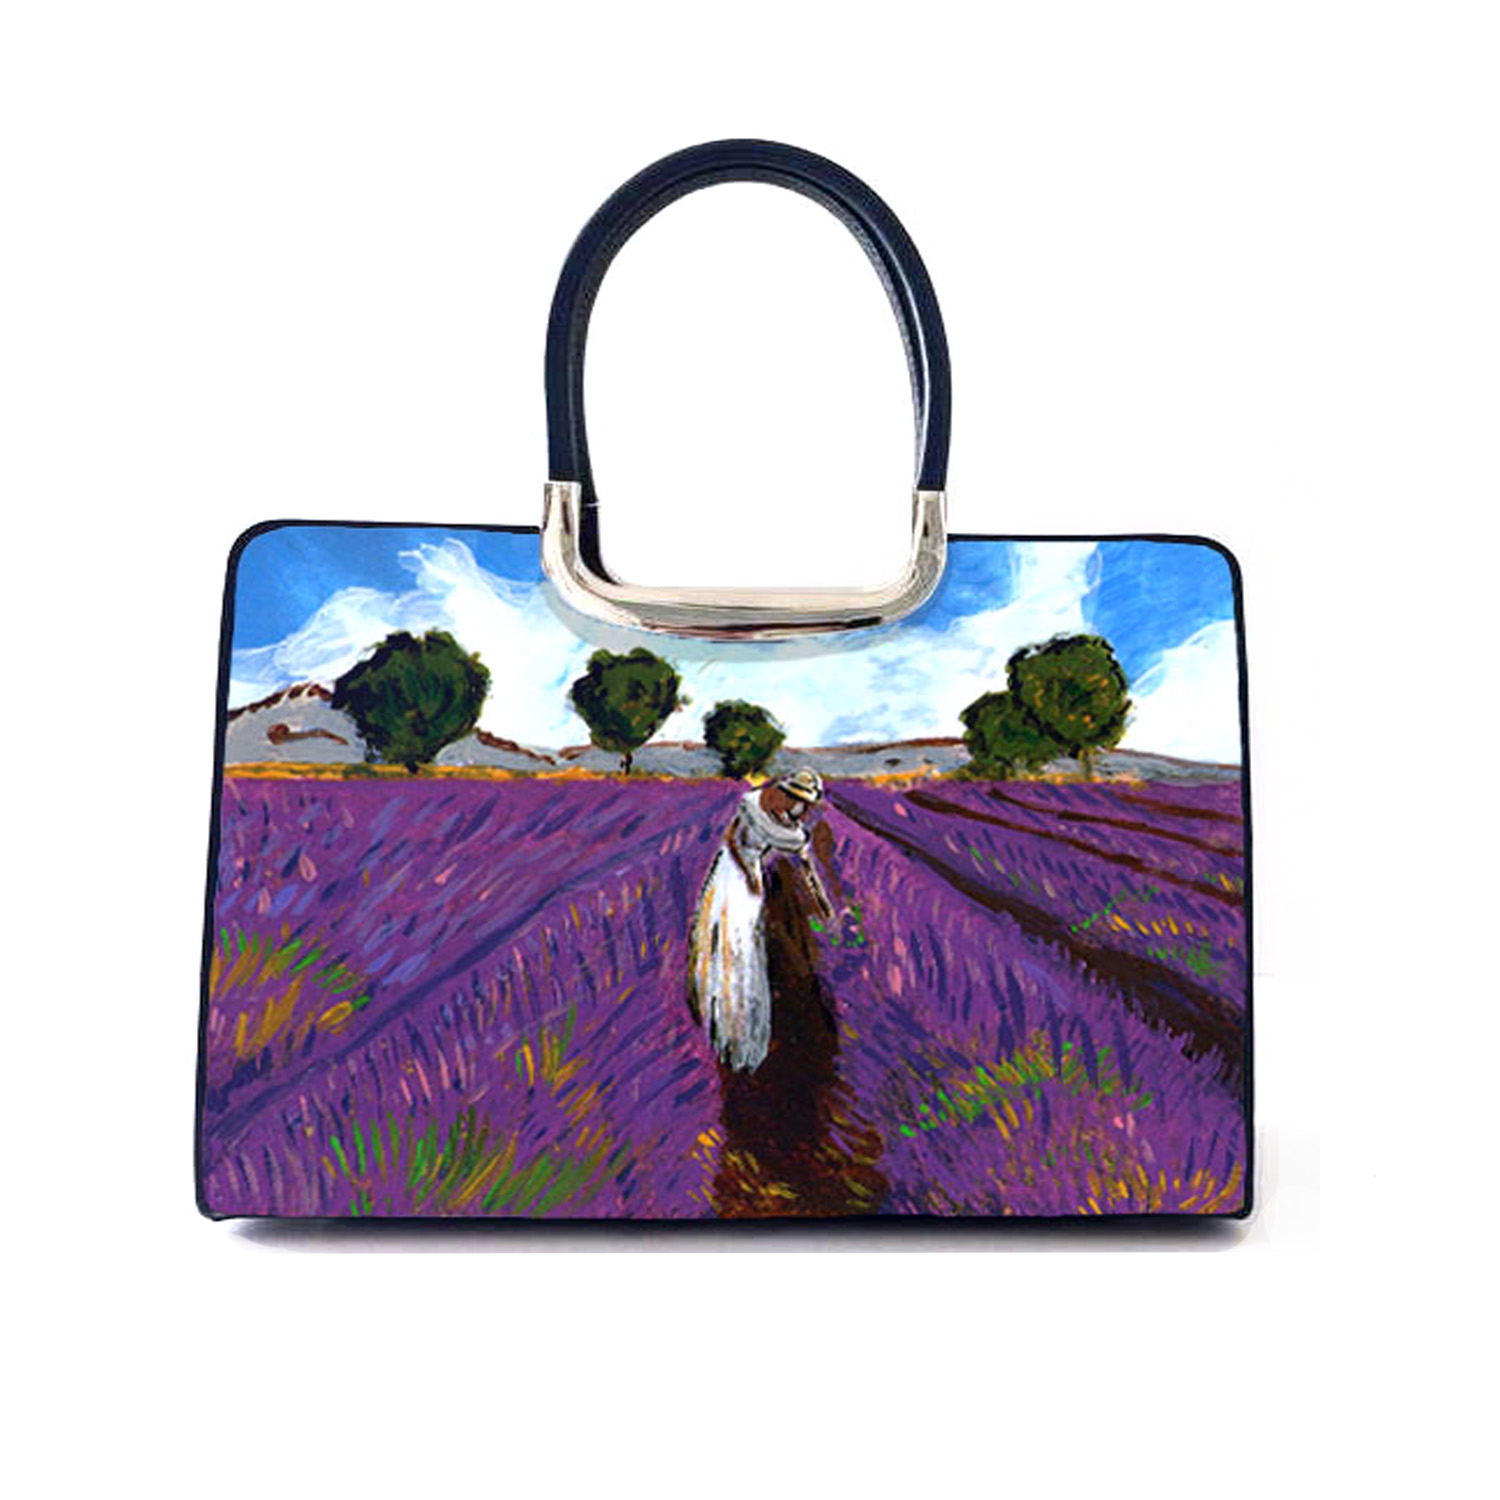 Hand-painted bag - Lavender in Provence